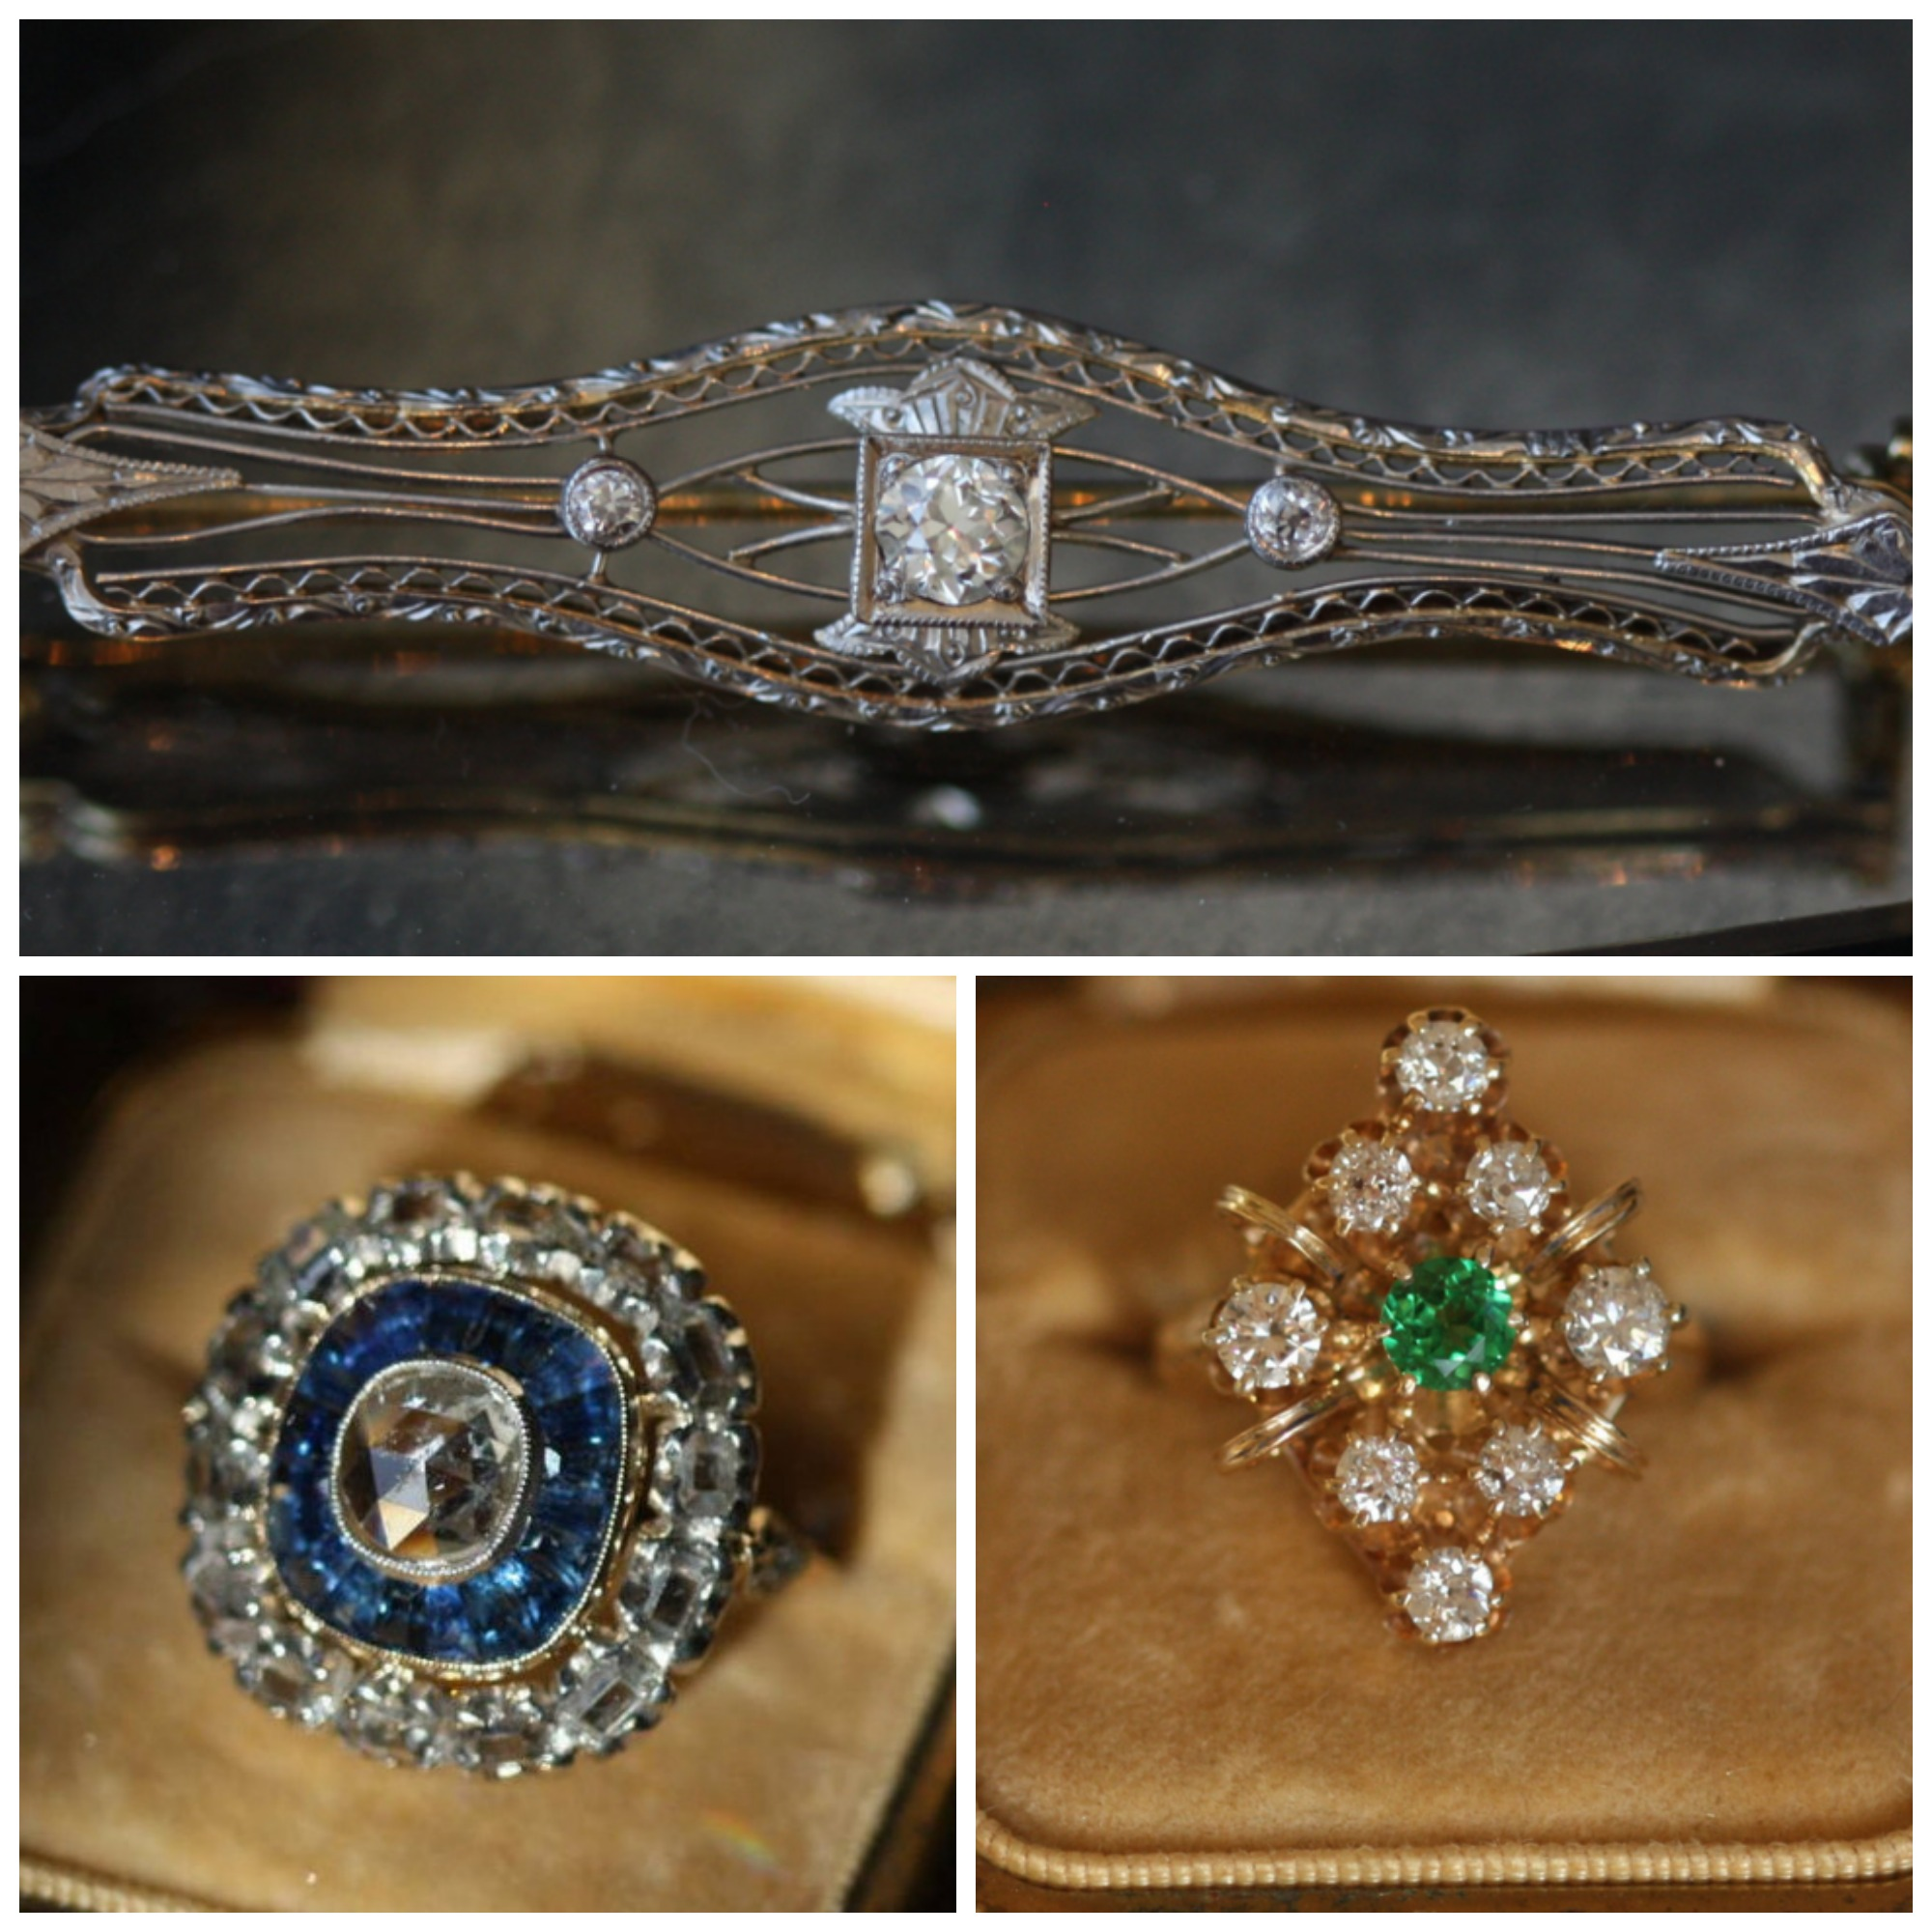 From top; White gold Bar brooch, Rose cut sapphire and diamond ring, and old cut diamond and Tsavorite ring. All available from Gilded Lane.